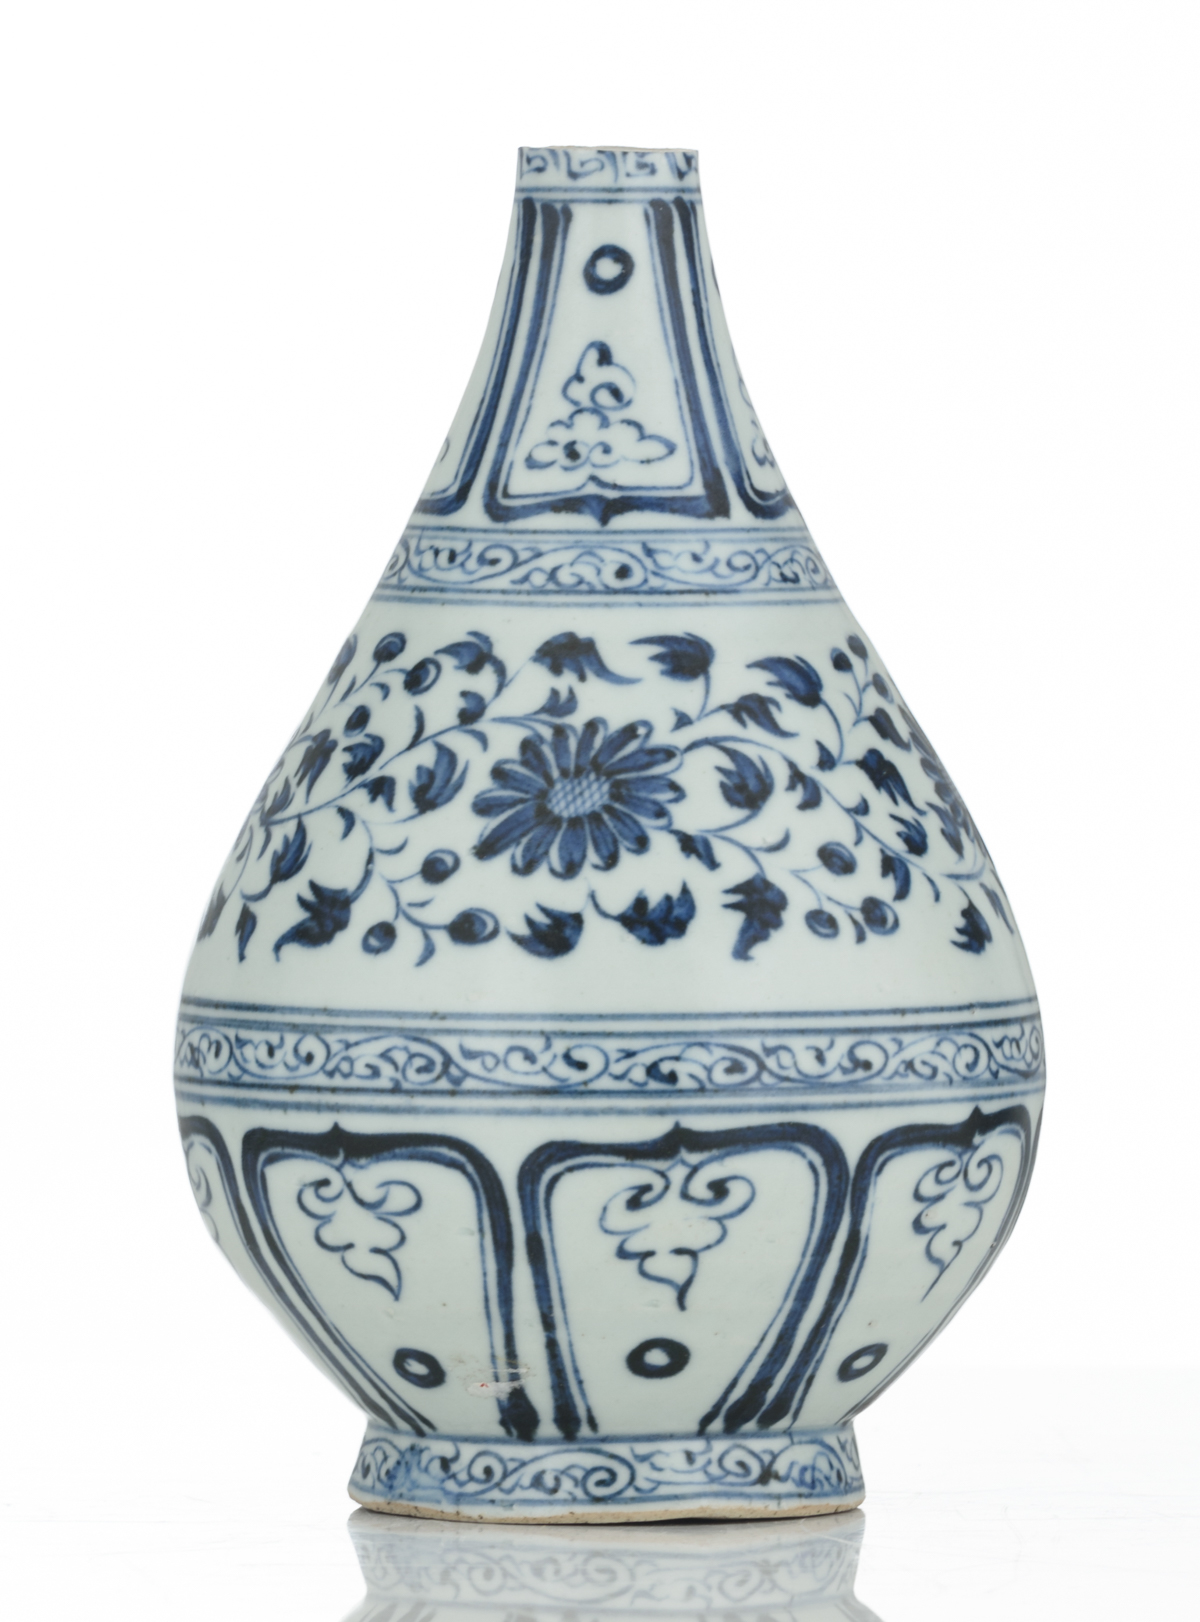 A Chinese blue and white floral decorated Ming type bottle vase, 17thC, H 21,5 cm - Image 3 of 6